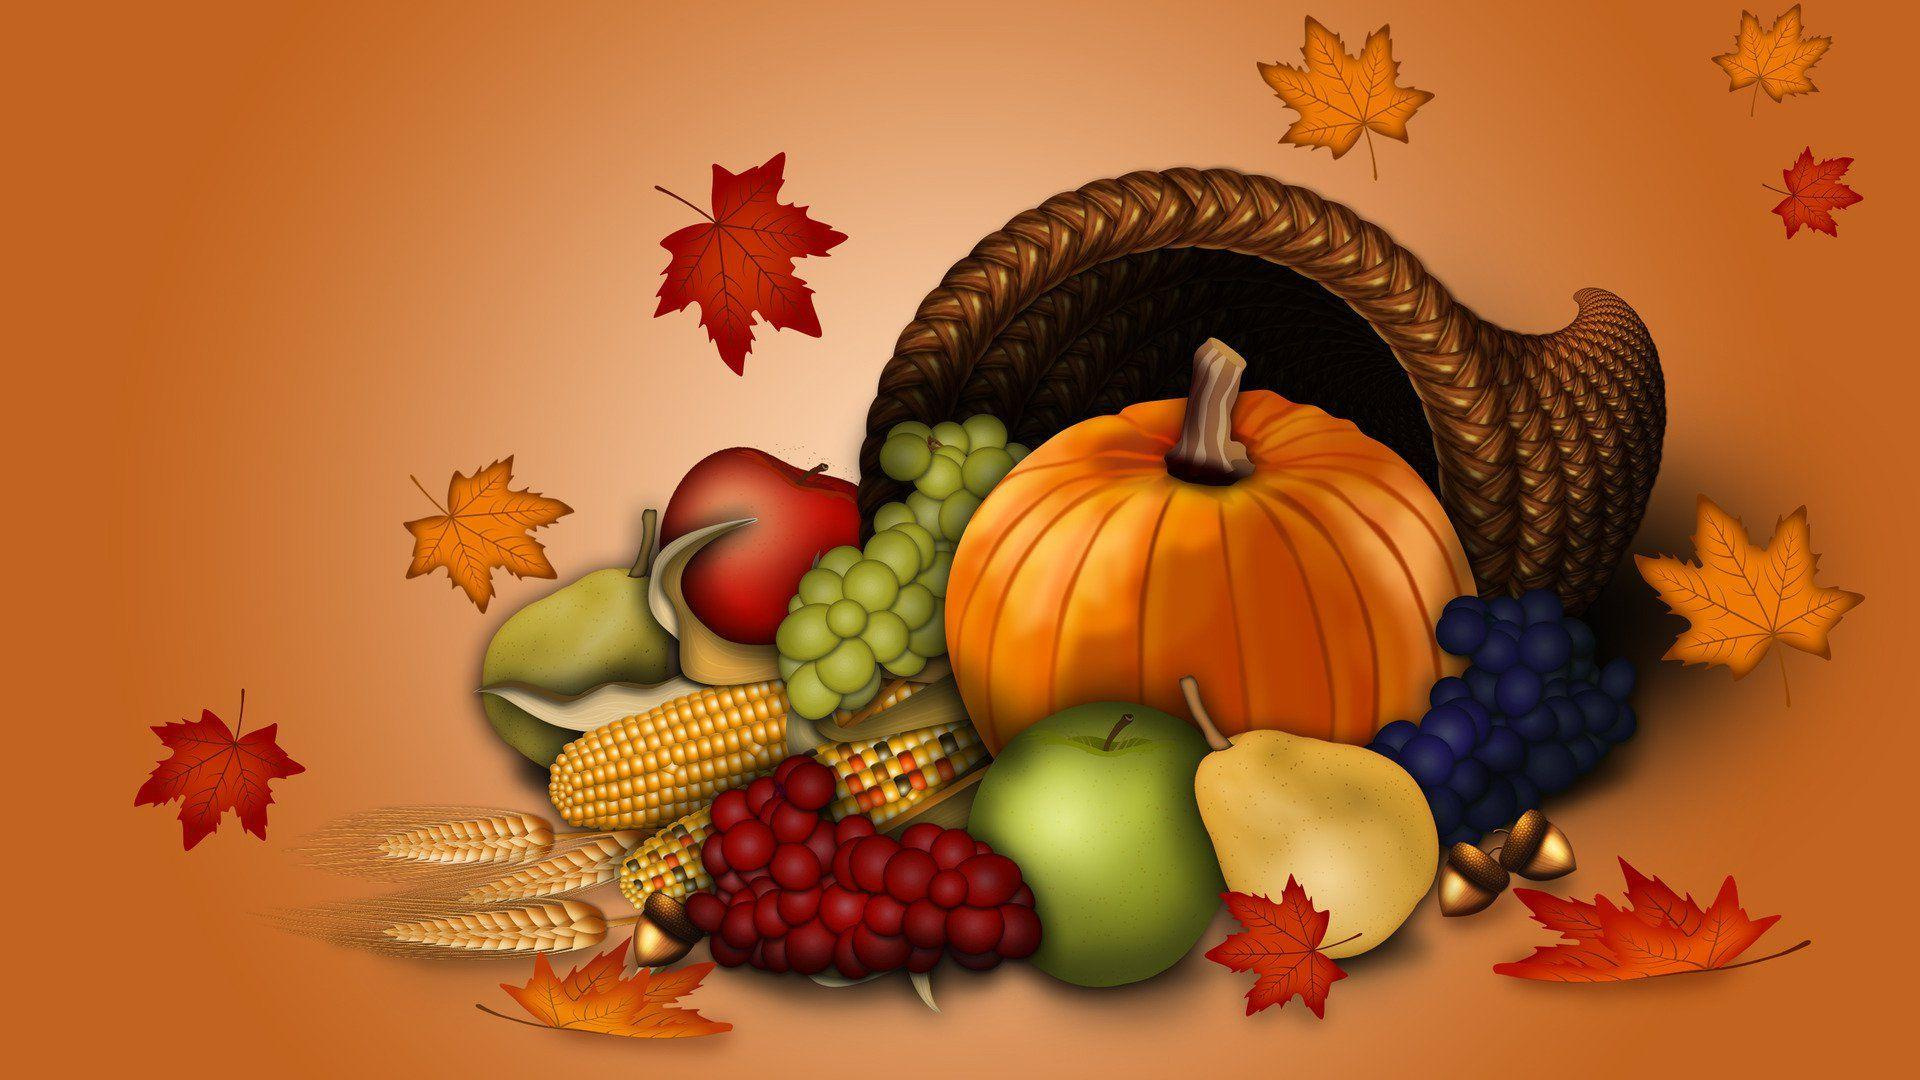 Happy Thanksgiving Images 2018 | Thanksgiving Day Pictures Photos ...